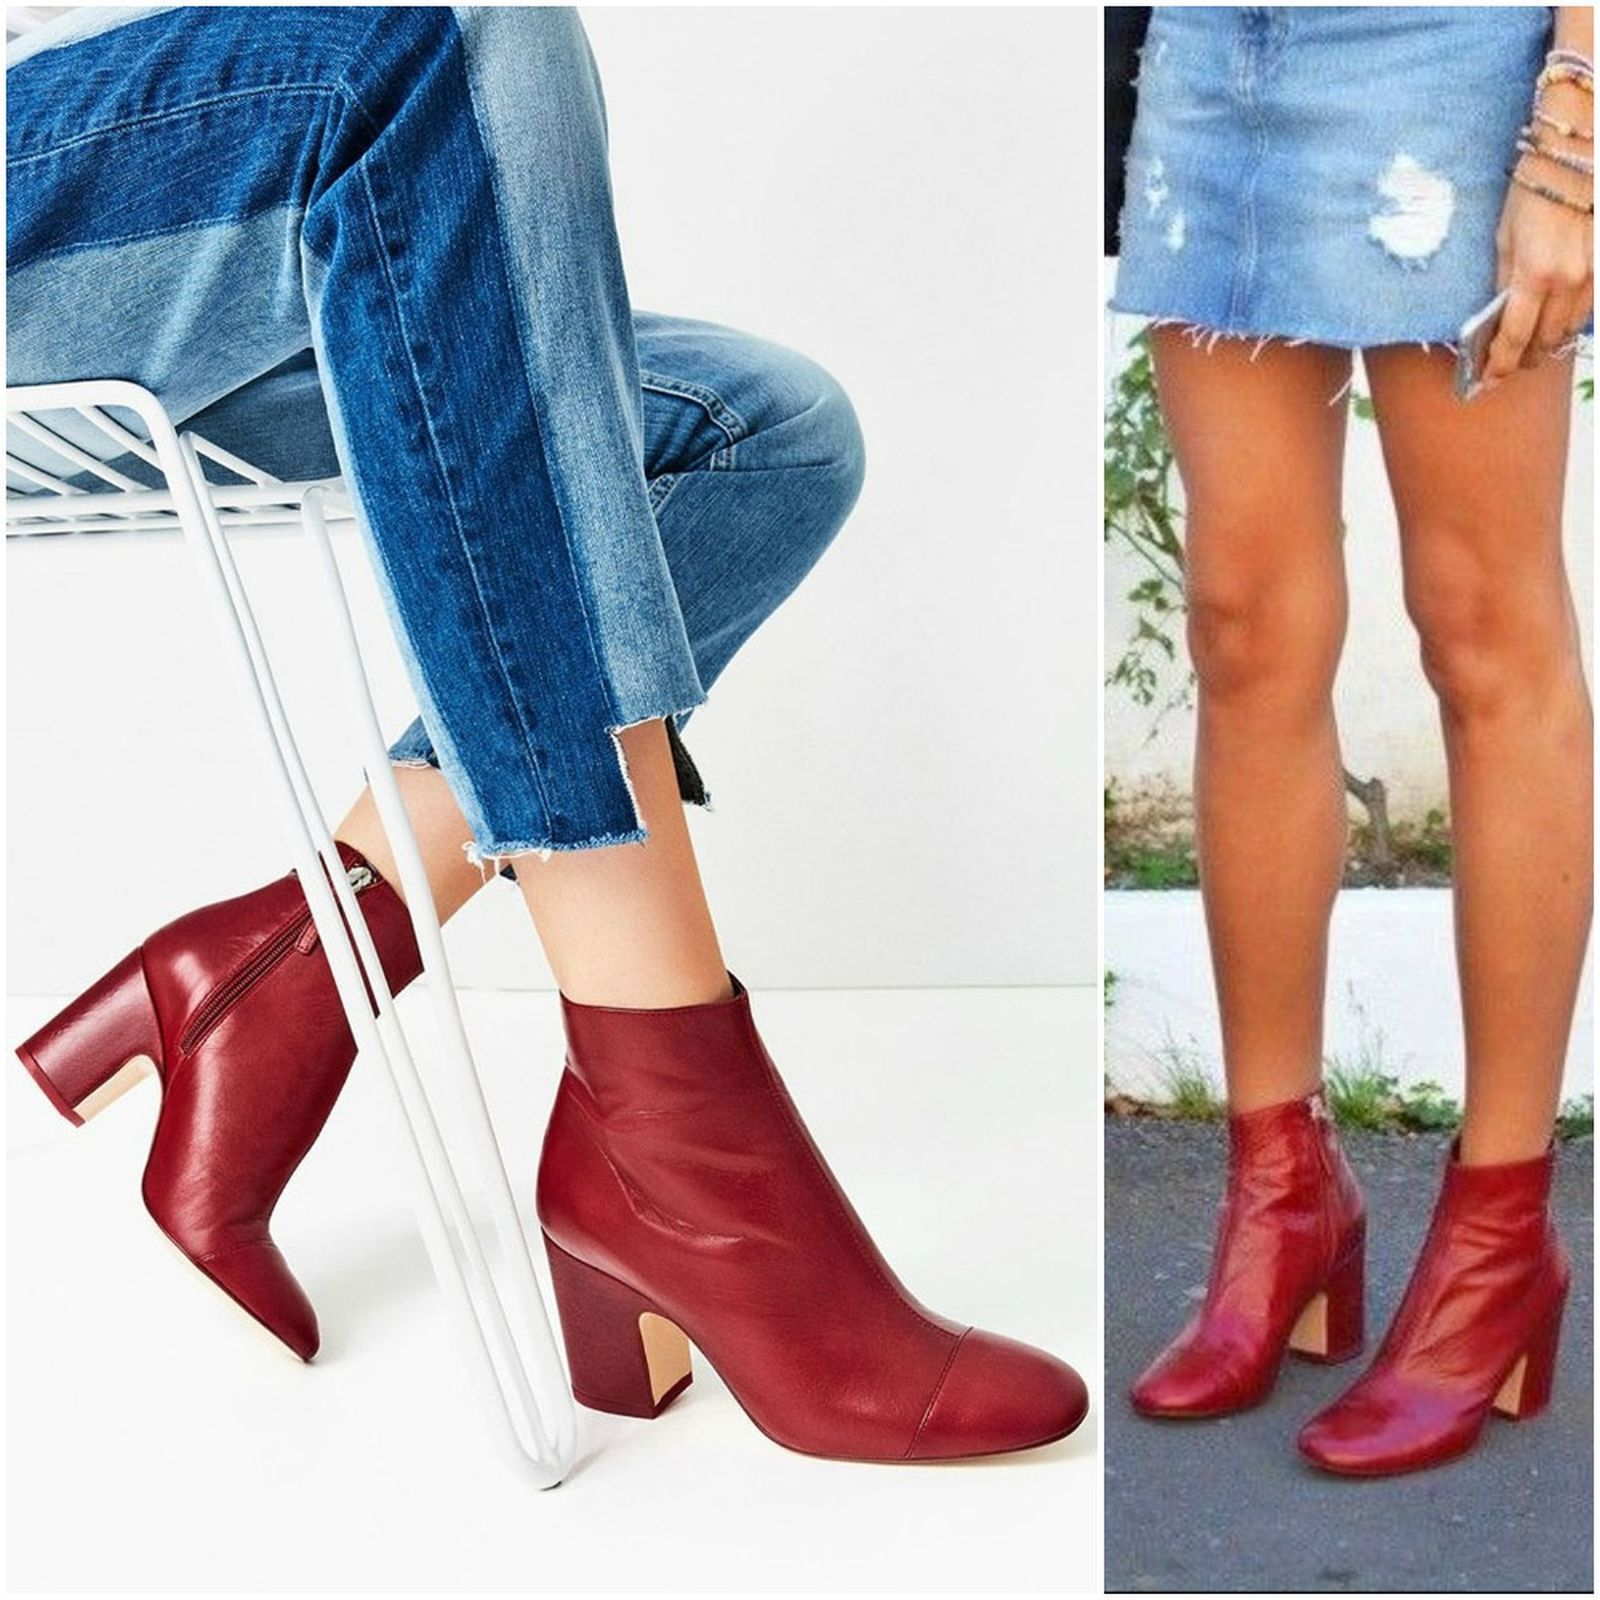 5193bb789e2 BNWT ZARA RED HIGH HEEL LEATHER ANKLE BOOTS WITH TOE CAP 35-41 Ref.  6126 101